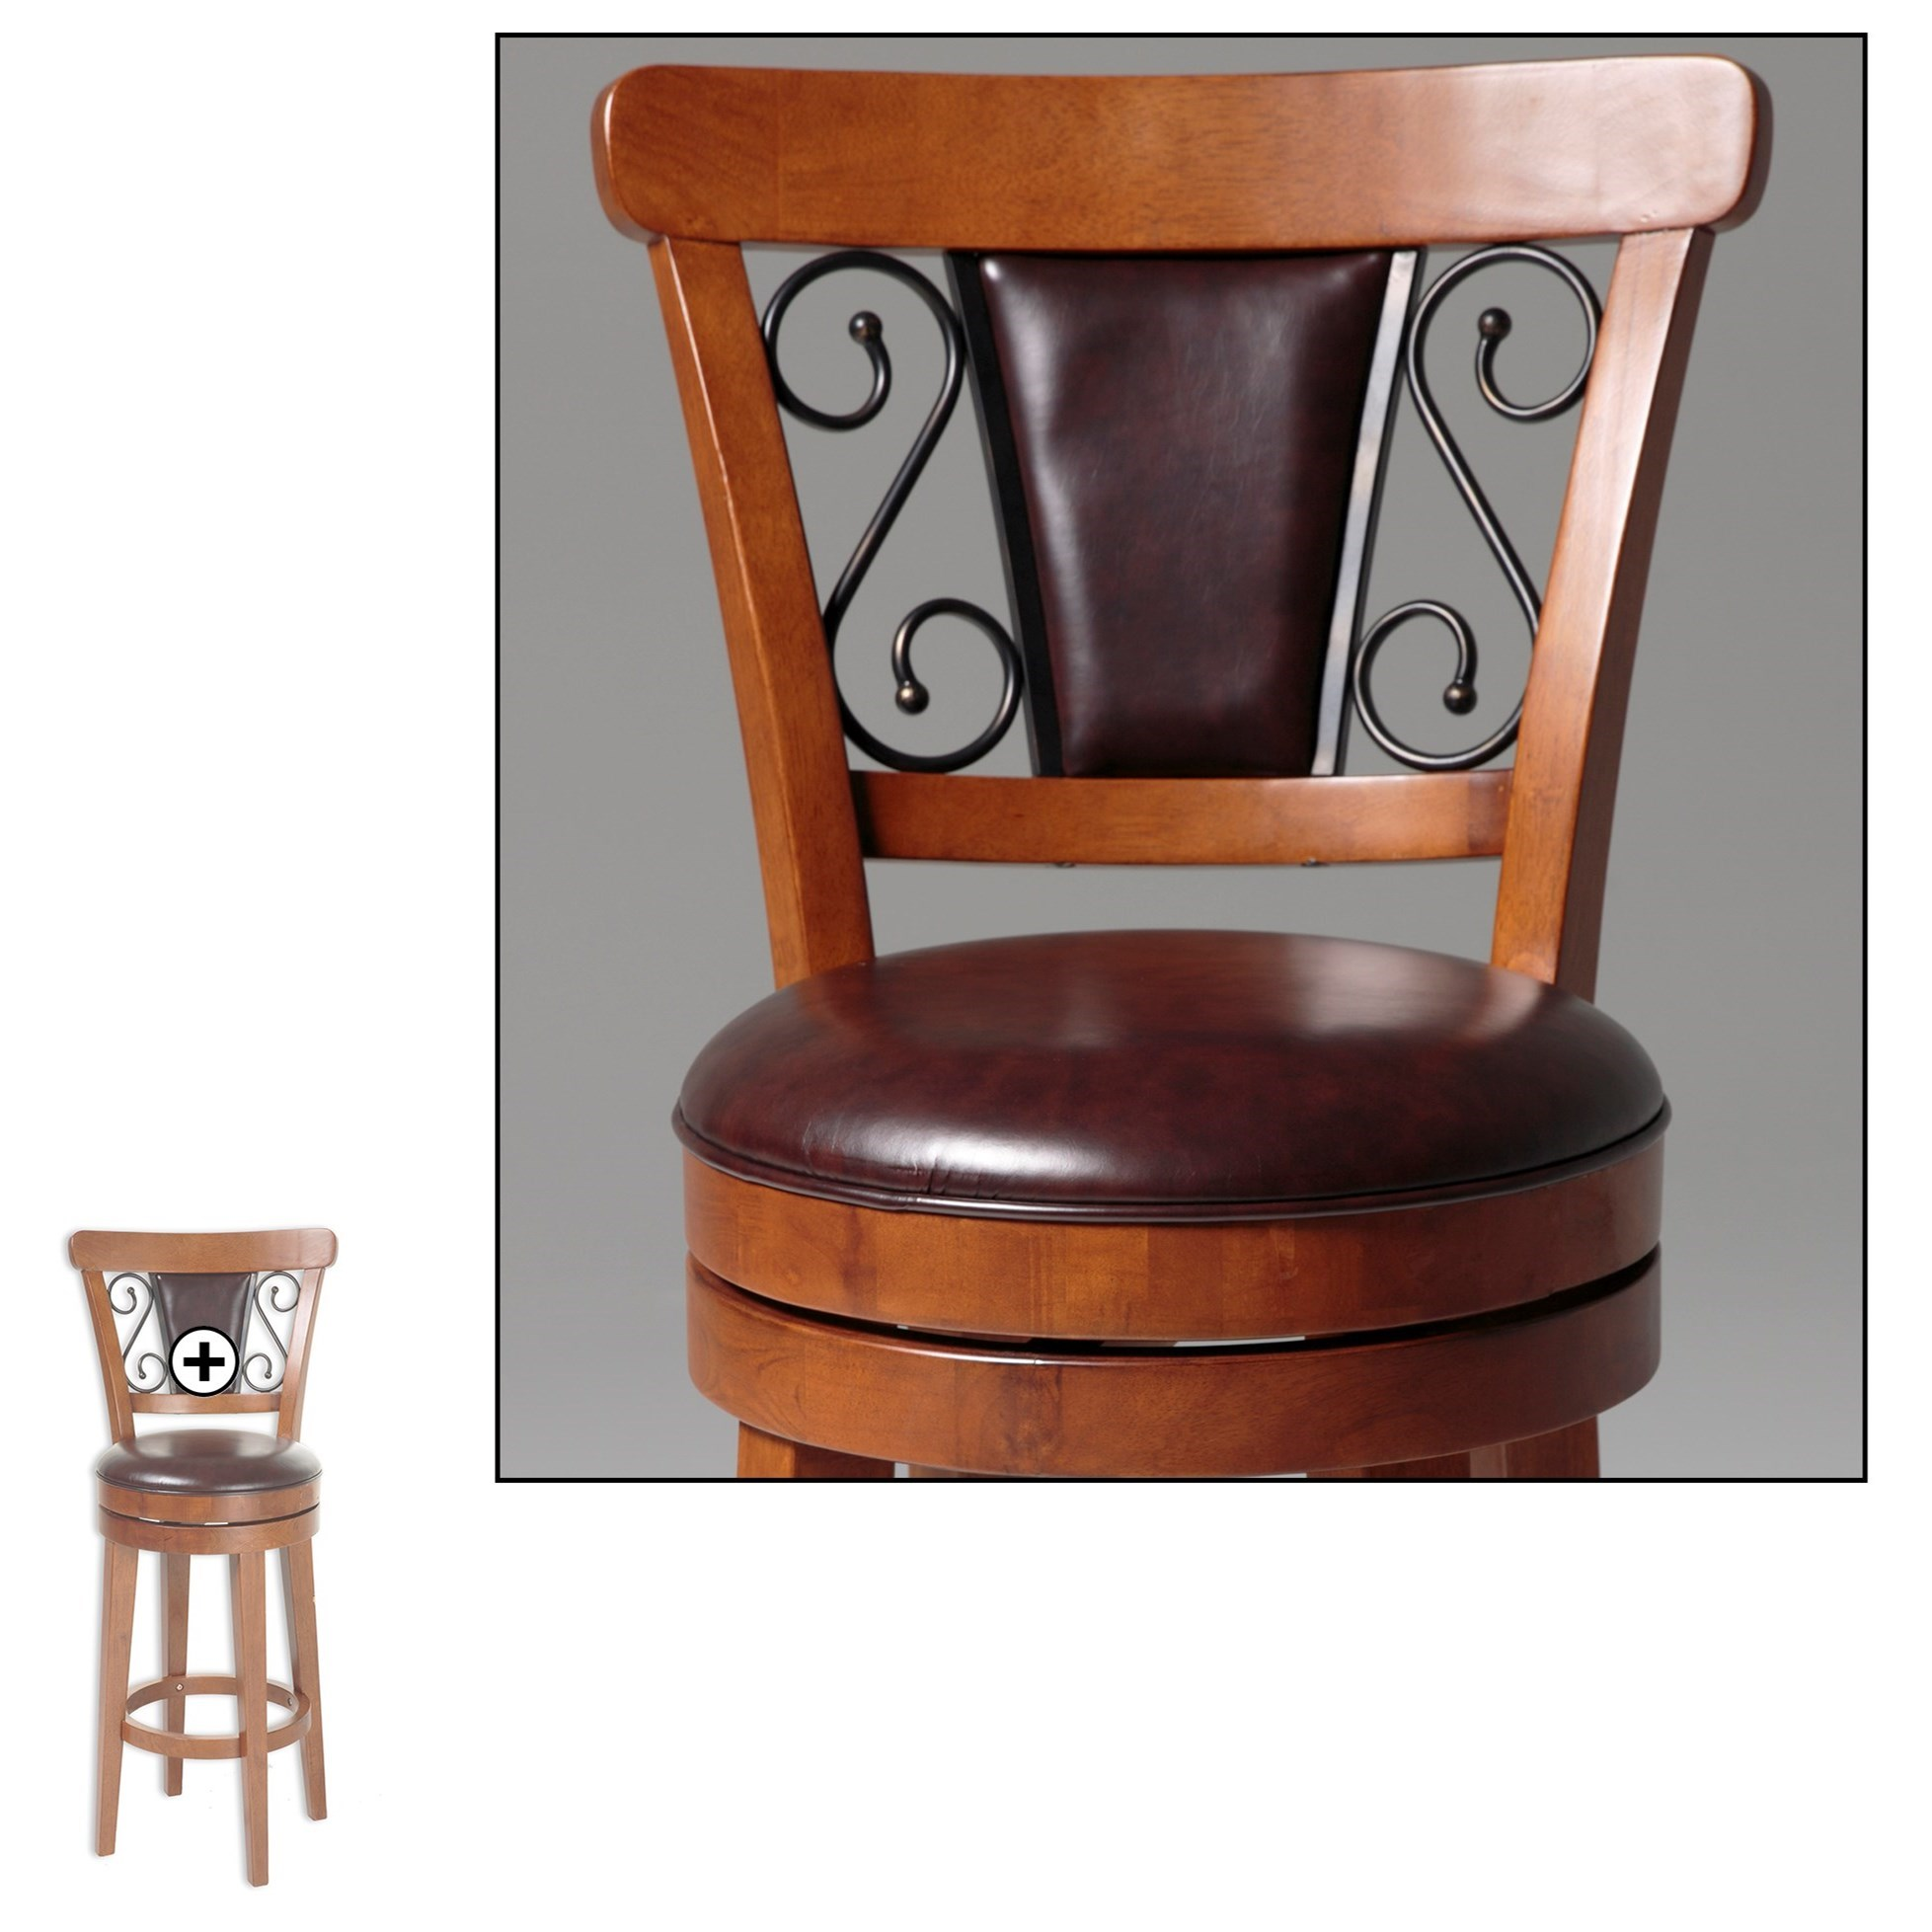 Fashion Bed Group Wood Barstools Trenton Wood Counter